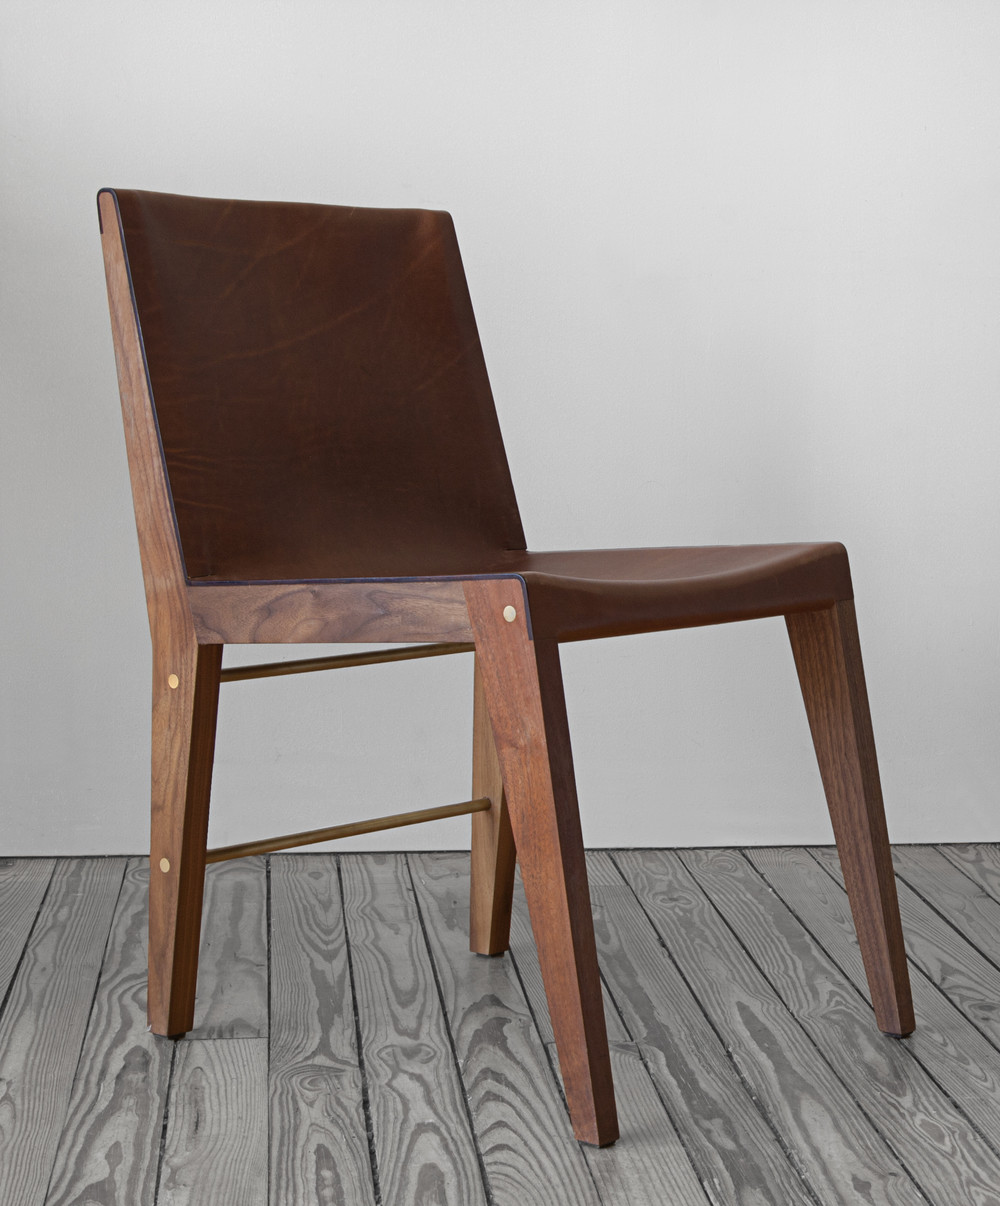 Leather and wooden chair